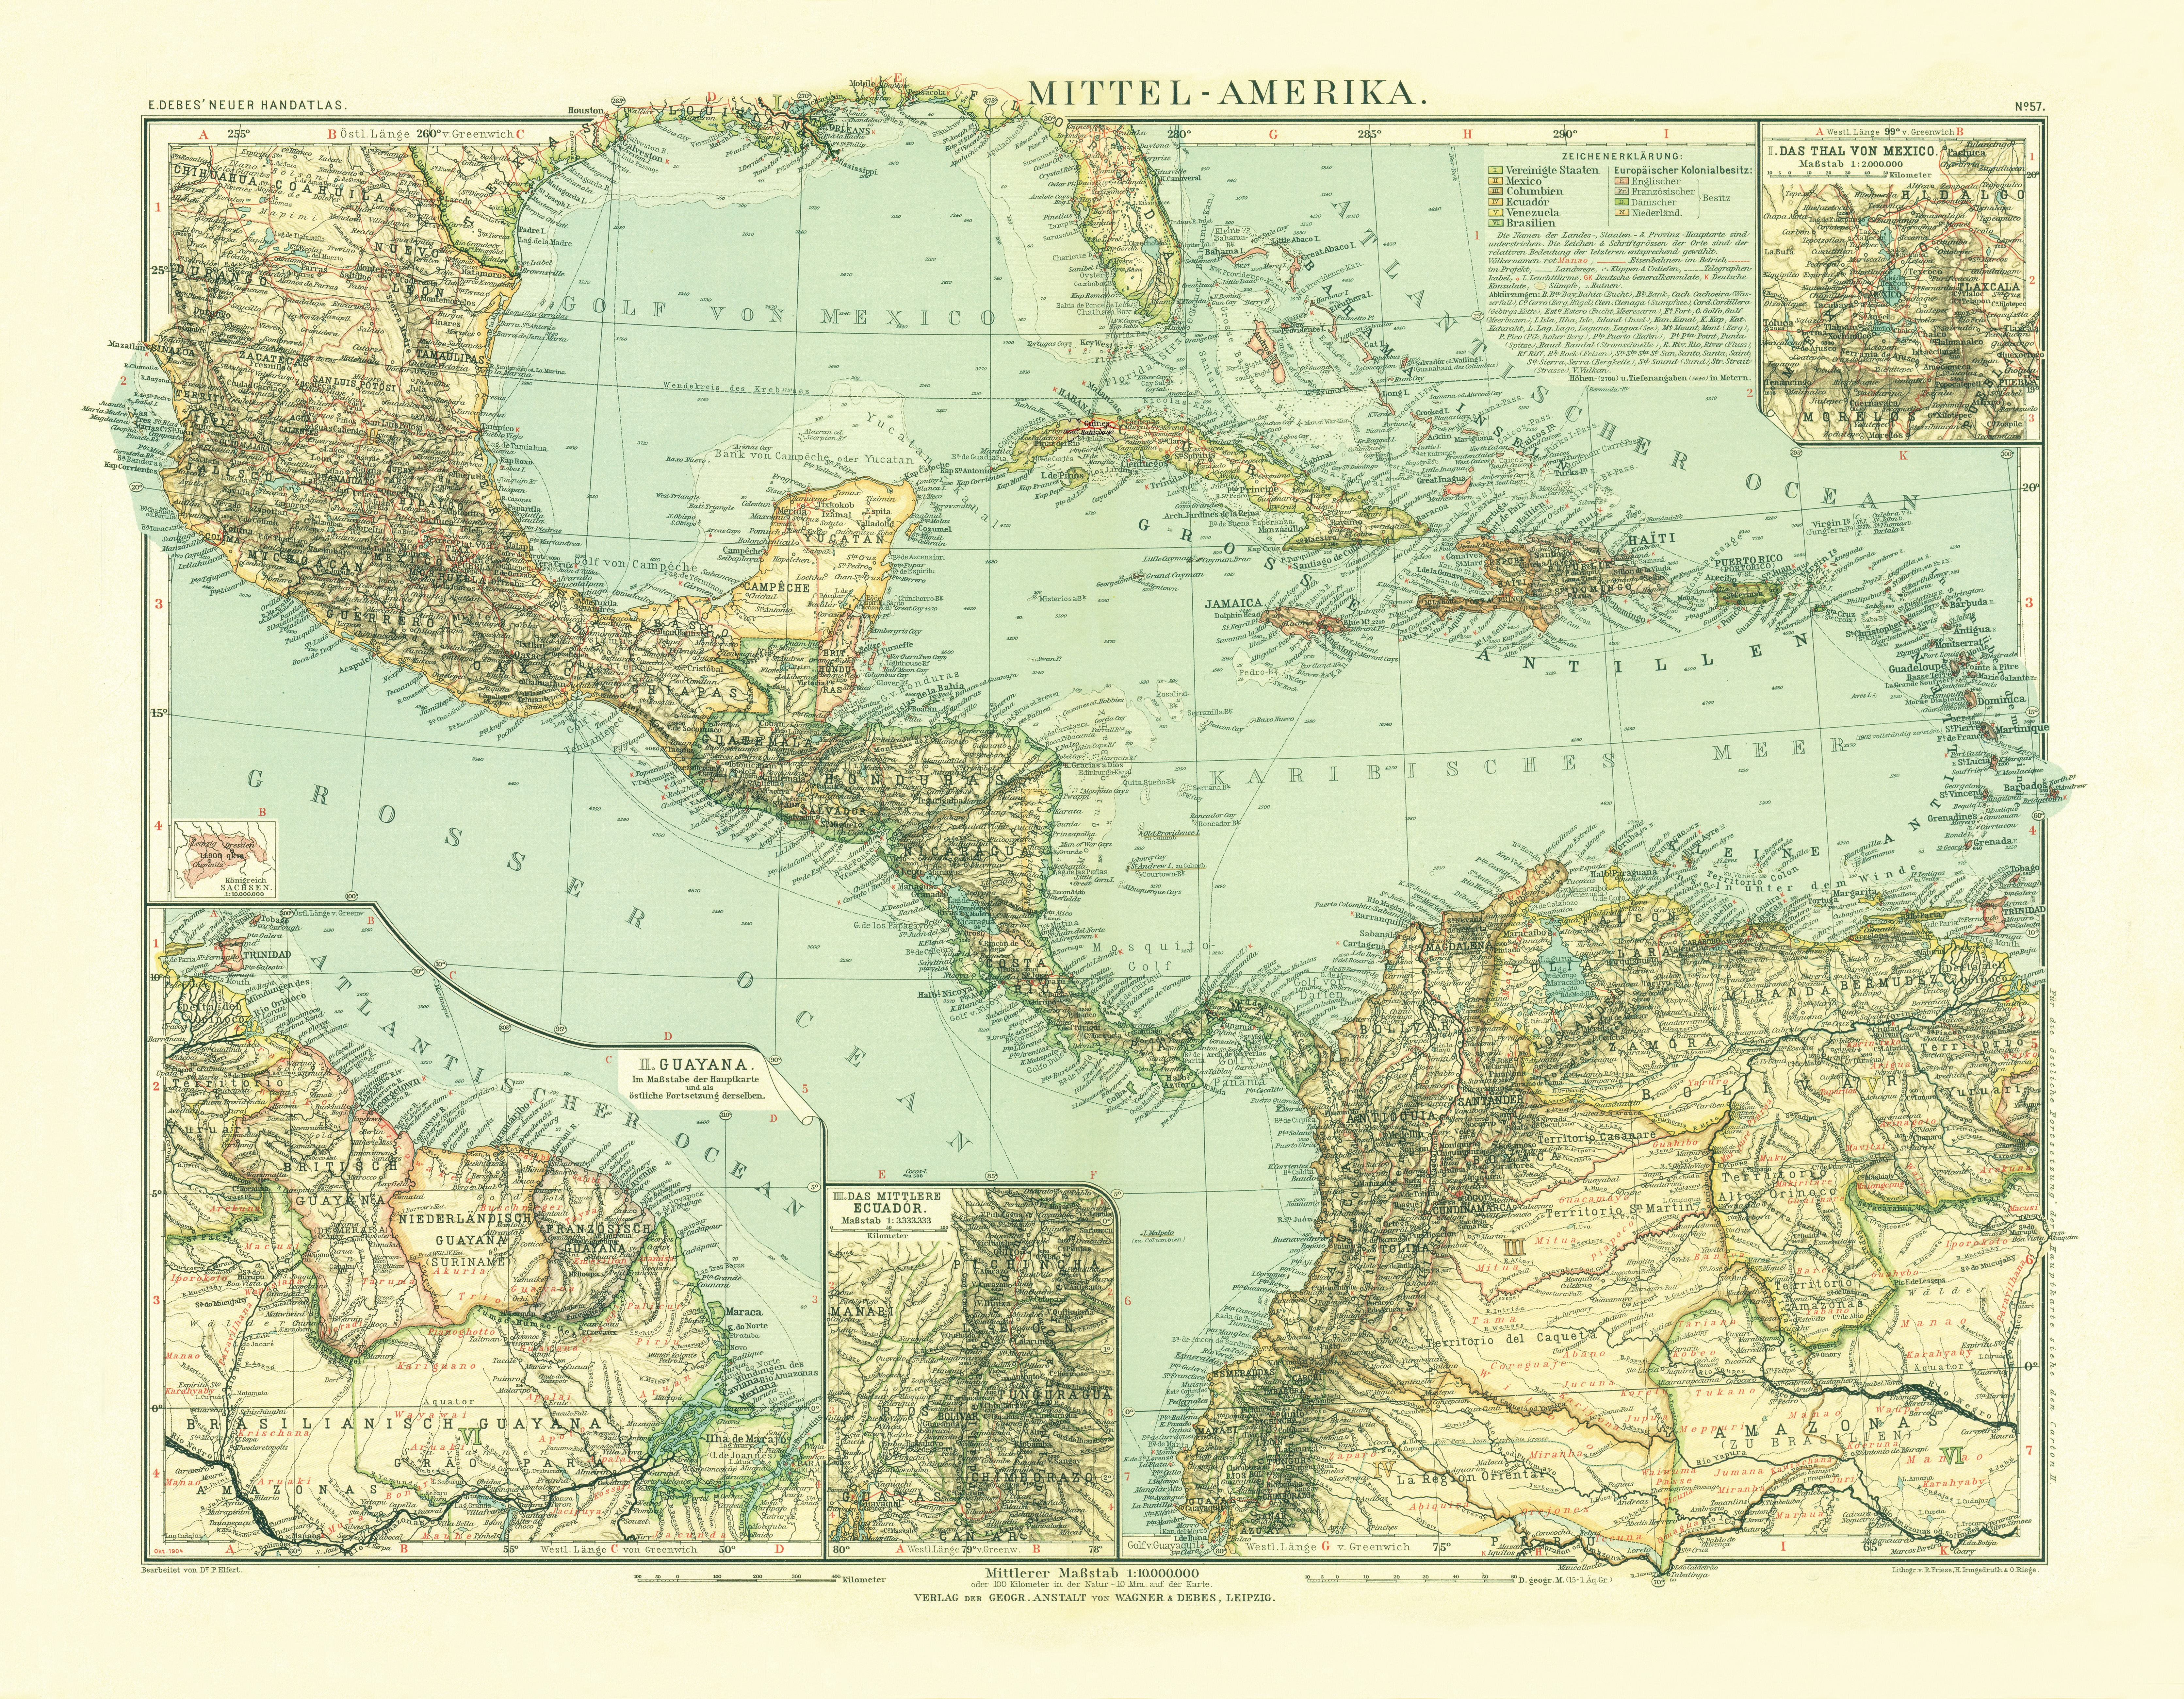 Old map of the Middle America in 1905. Buy vintage map replica ...